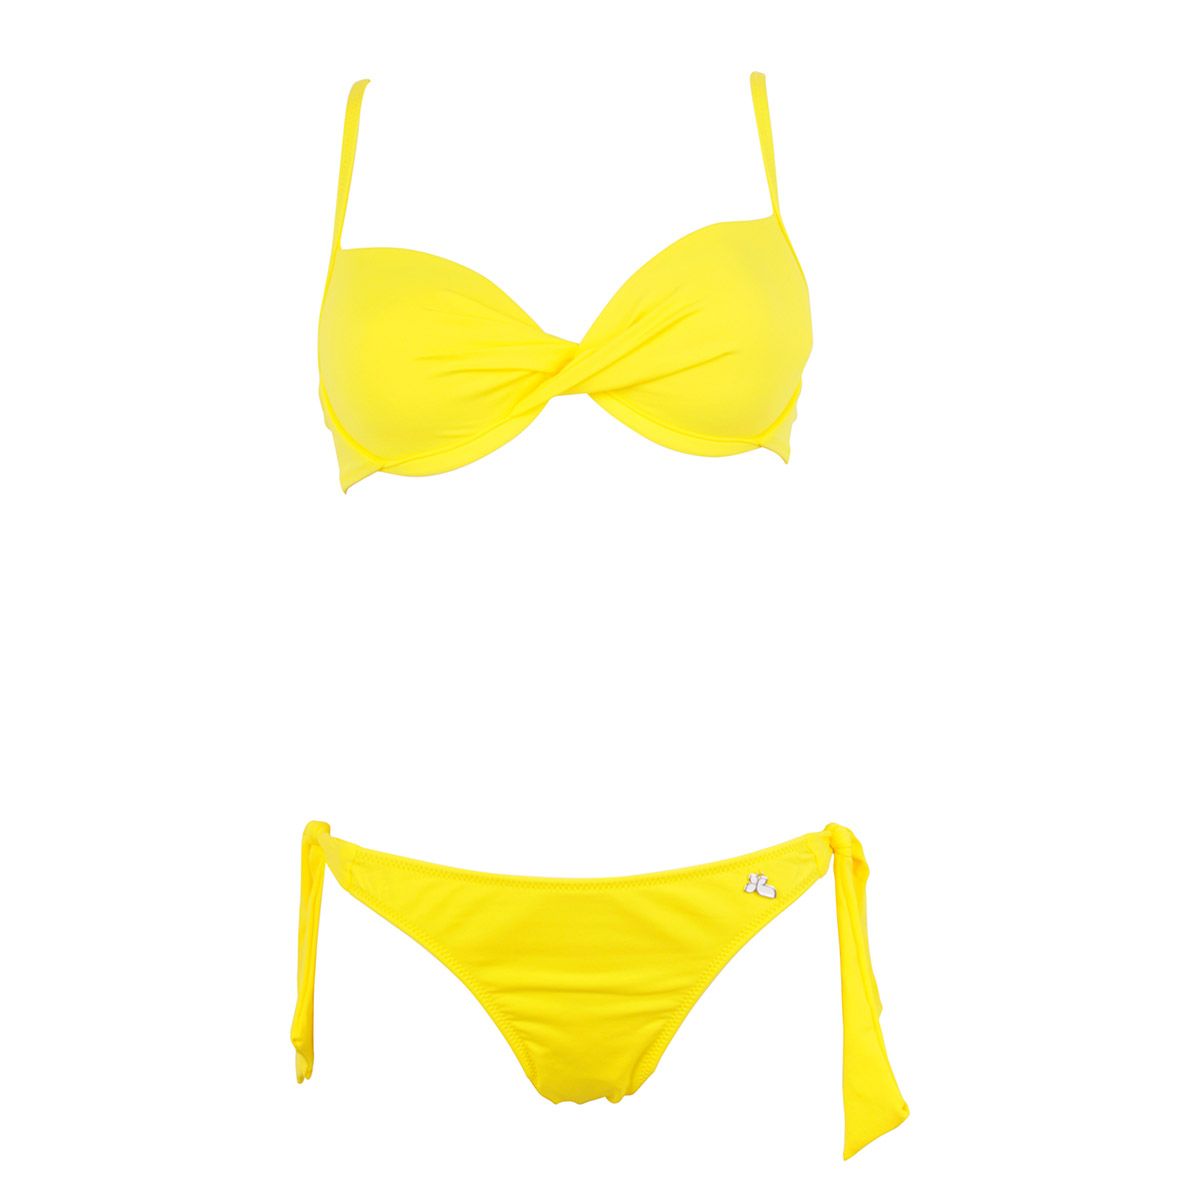 Maillot de bain 2 pi ces push up sexy jaune unicool lolita for Maillot deux pieces piscine